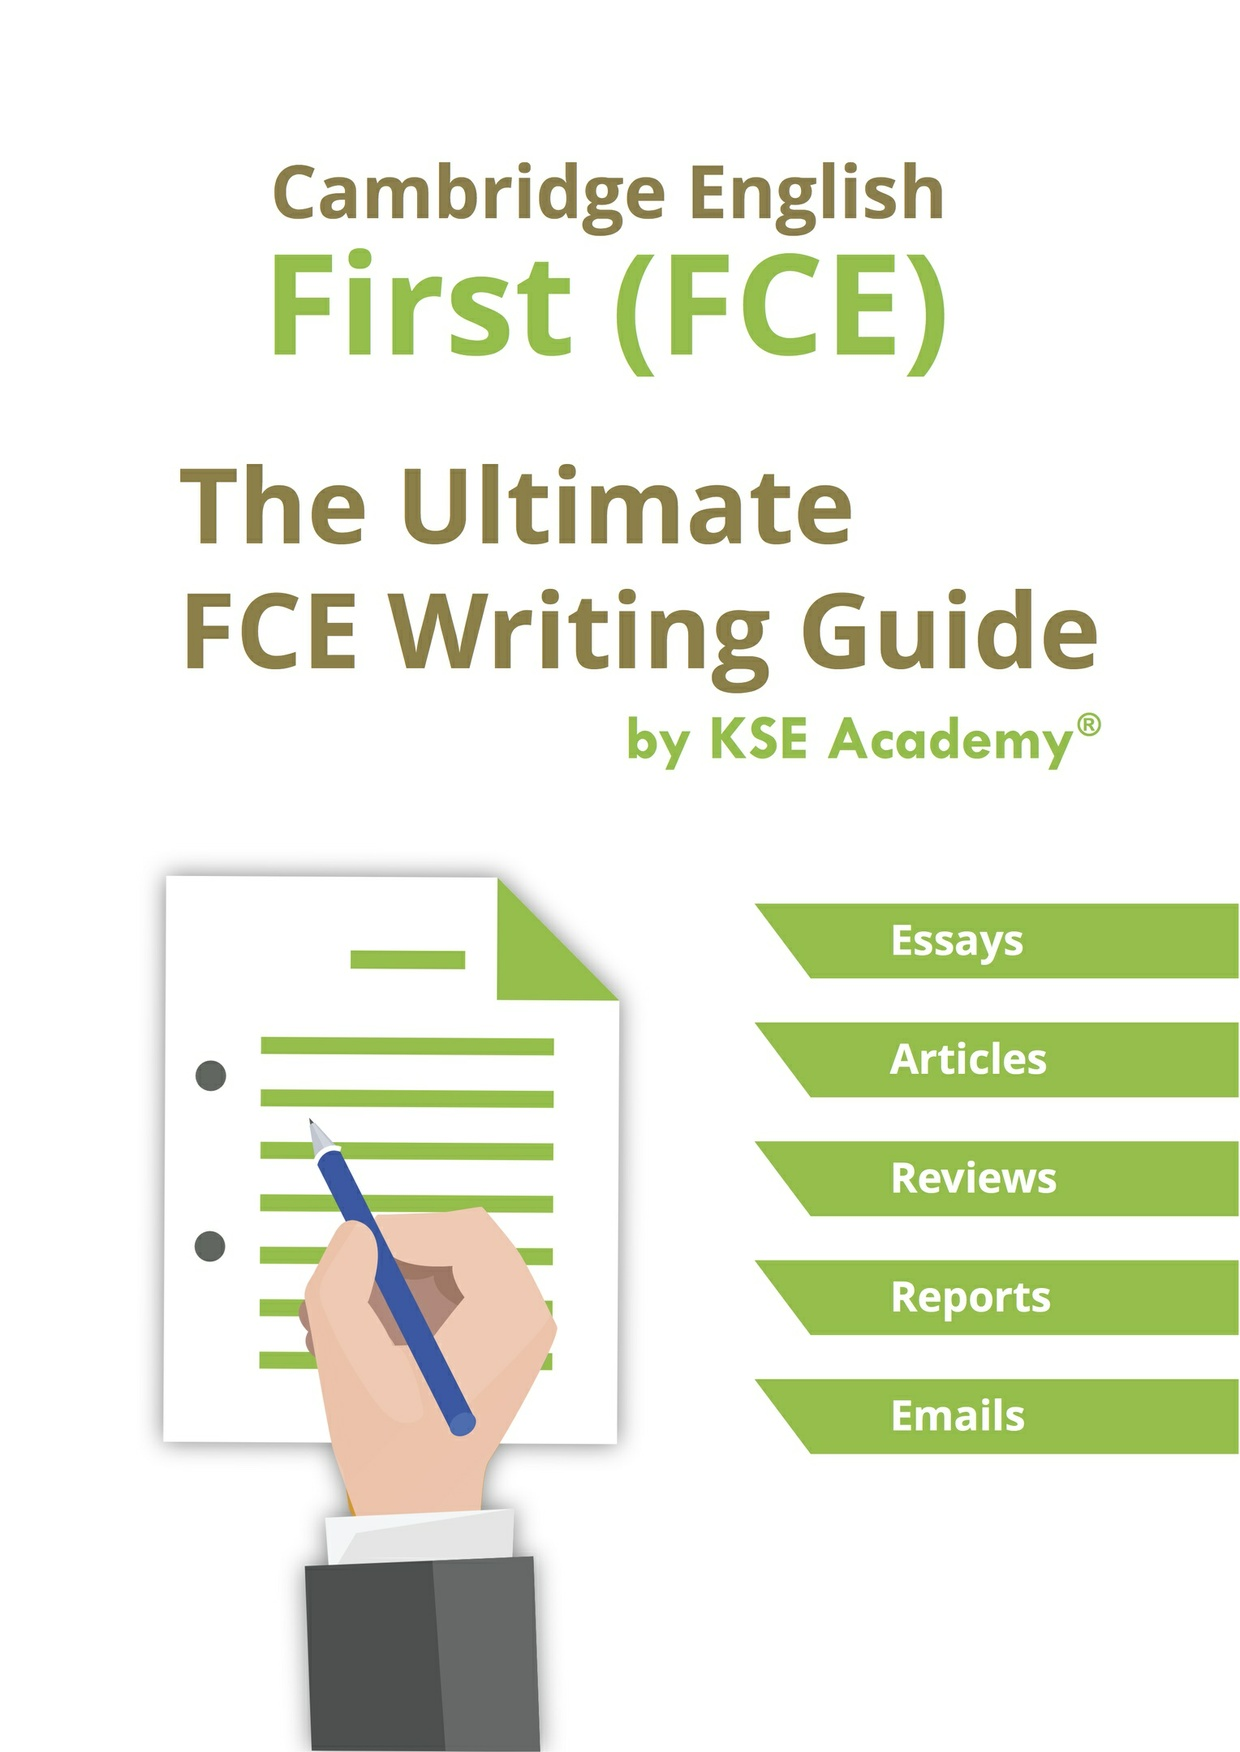 Cambridge English: First (FCE) Writing Guide